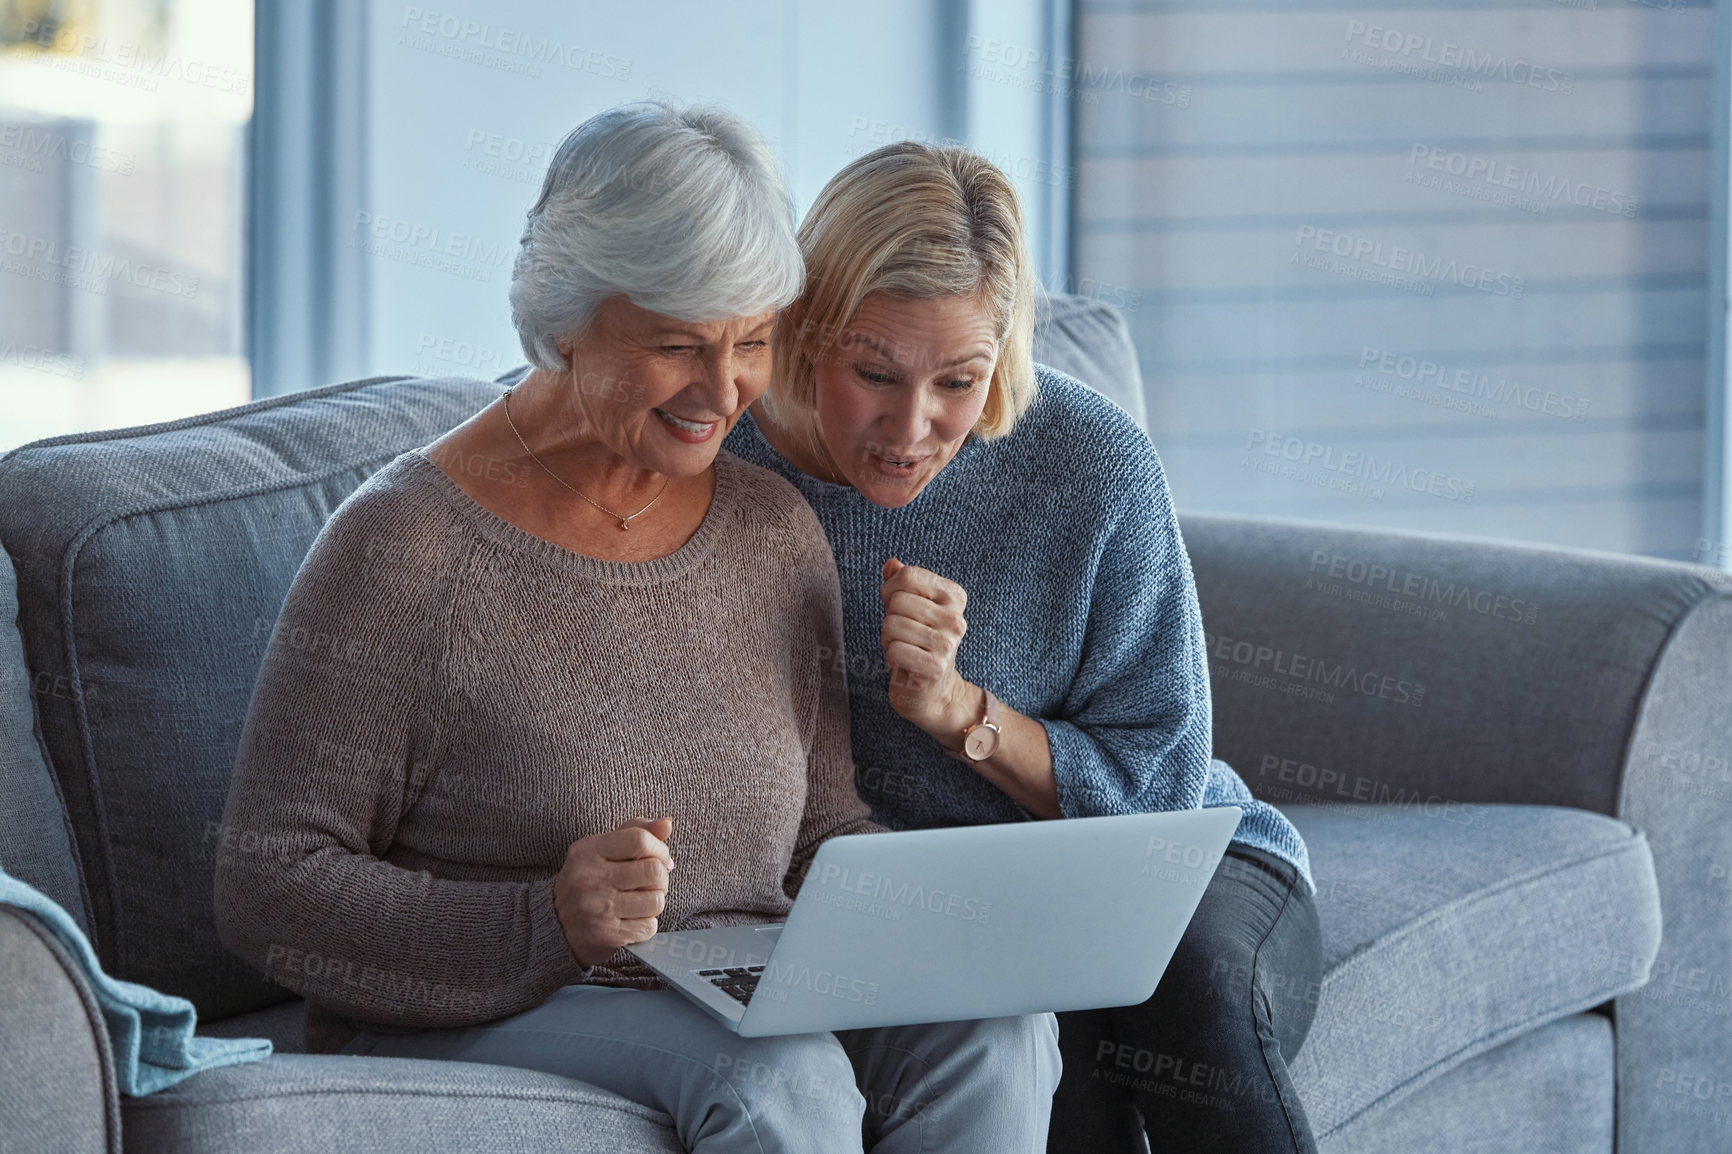 Buy stock photo Shot of a senior woman and her daughter looking surprised while using a laptop on the sofa at home